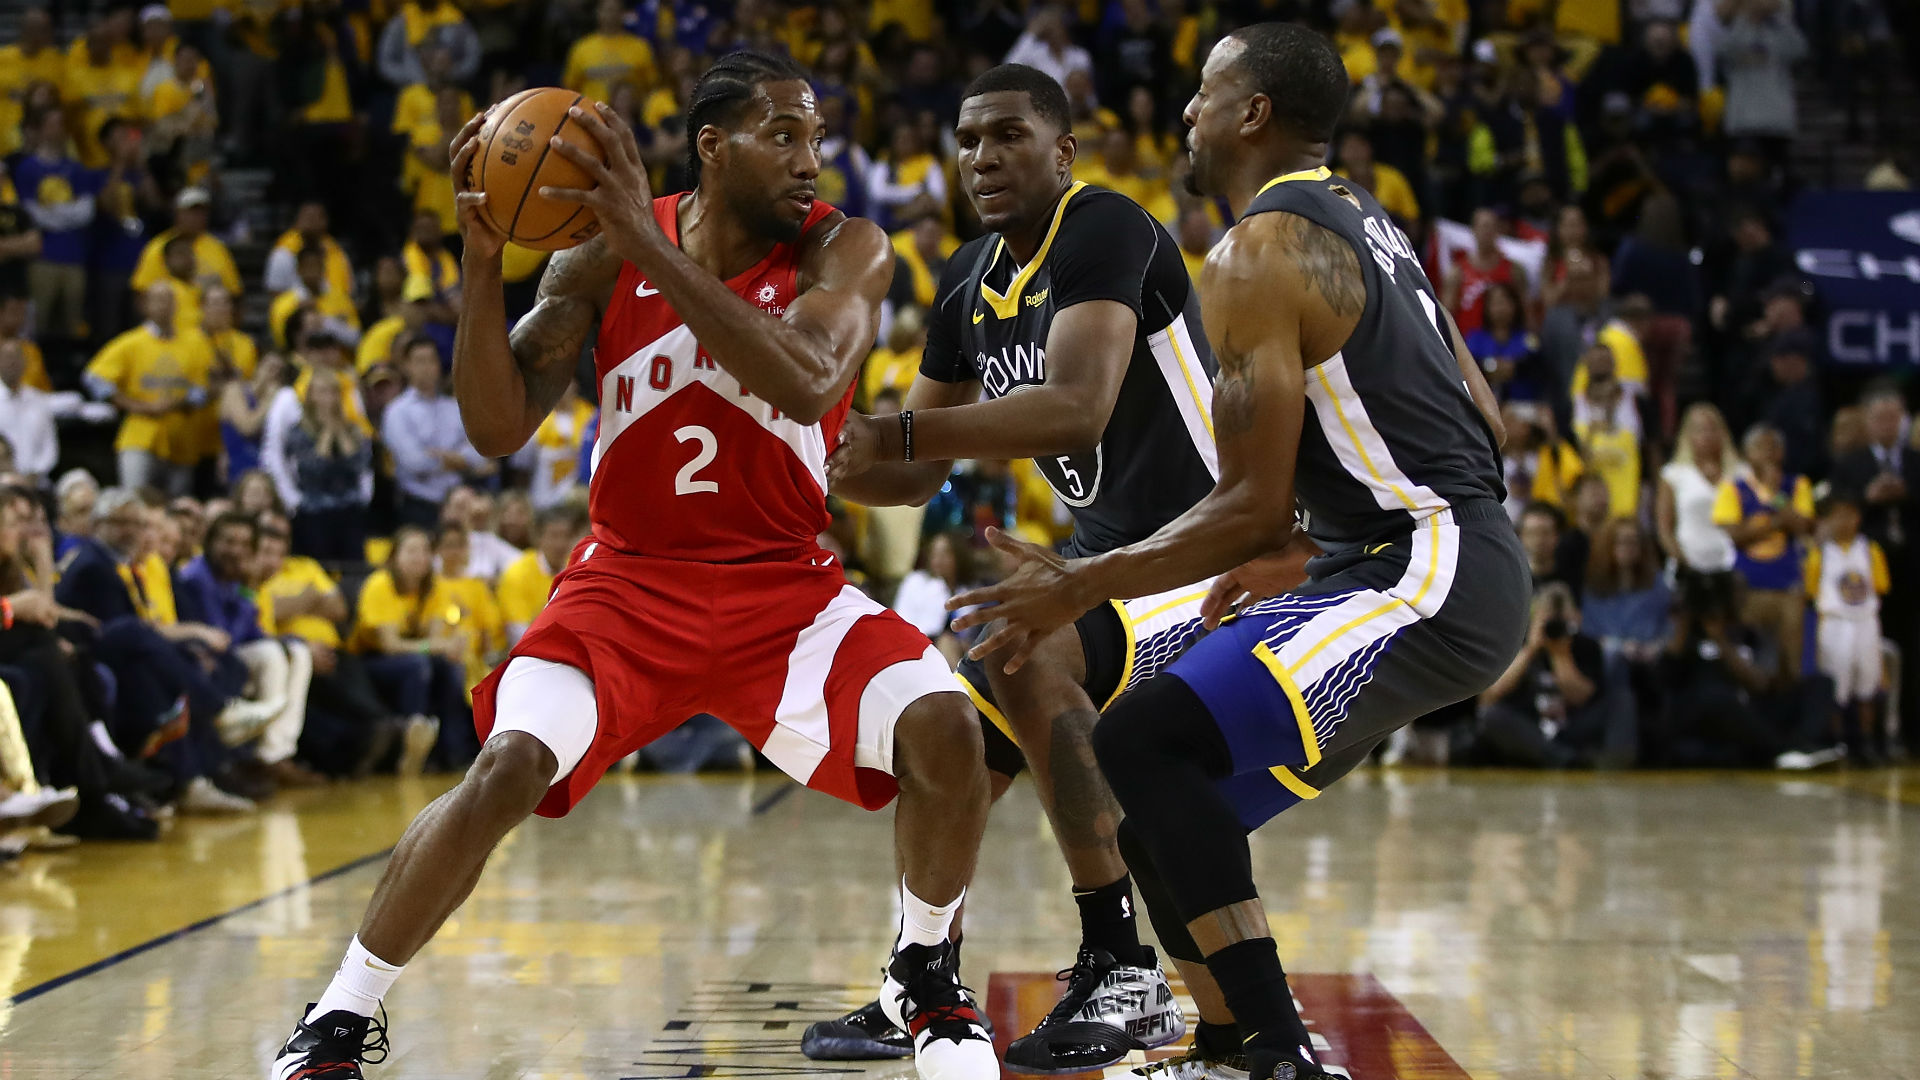 It's not over yet! - Fourth win all that matters for Raptors, insists Leonard